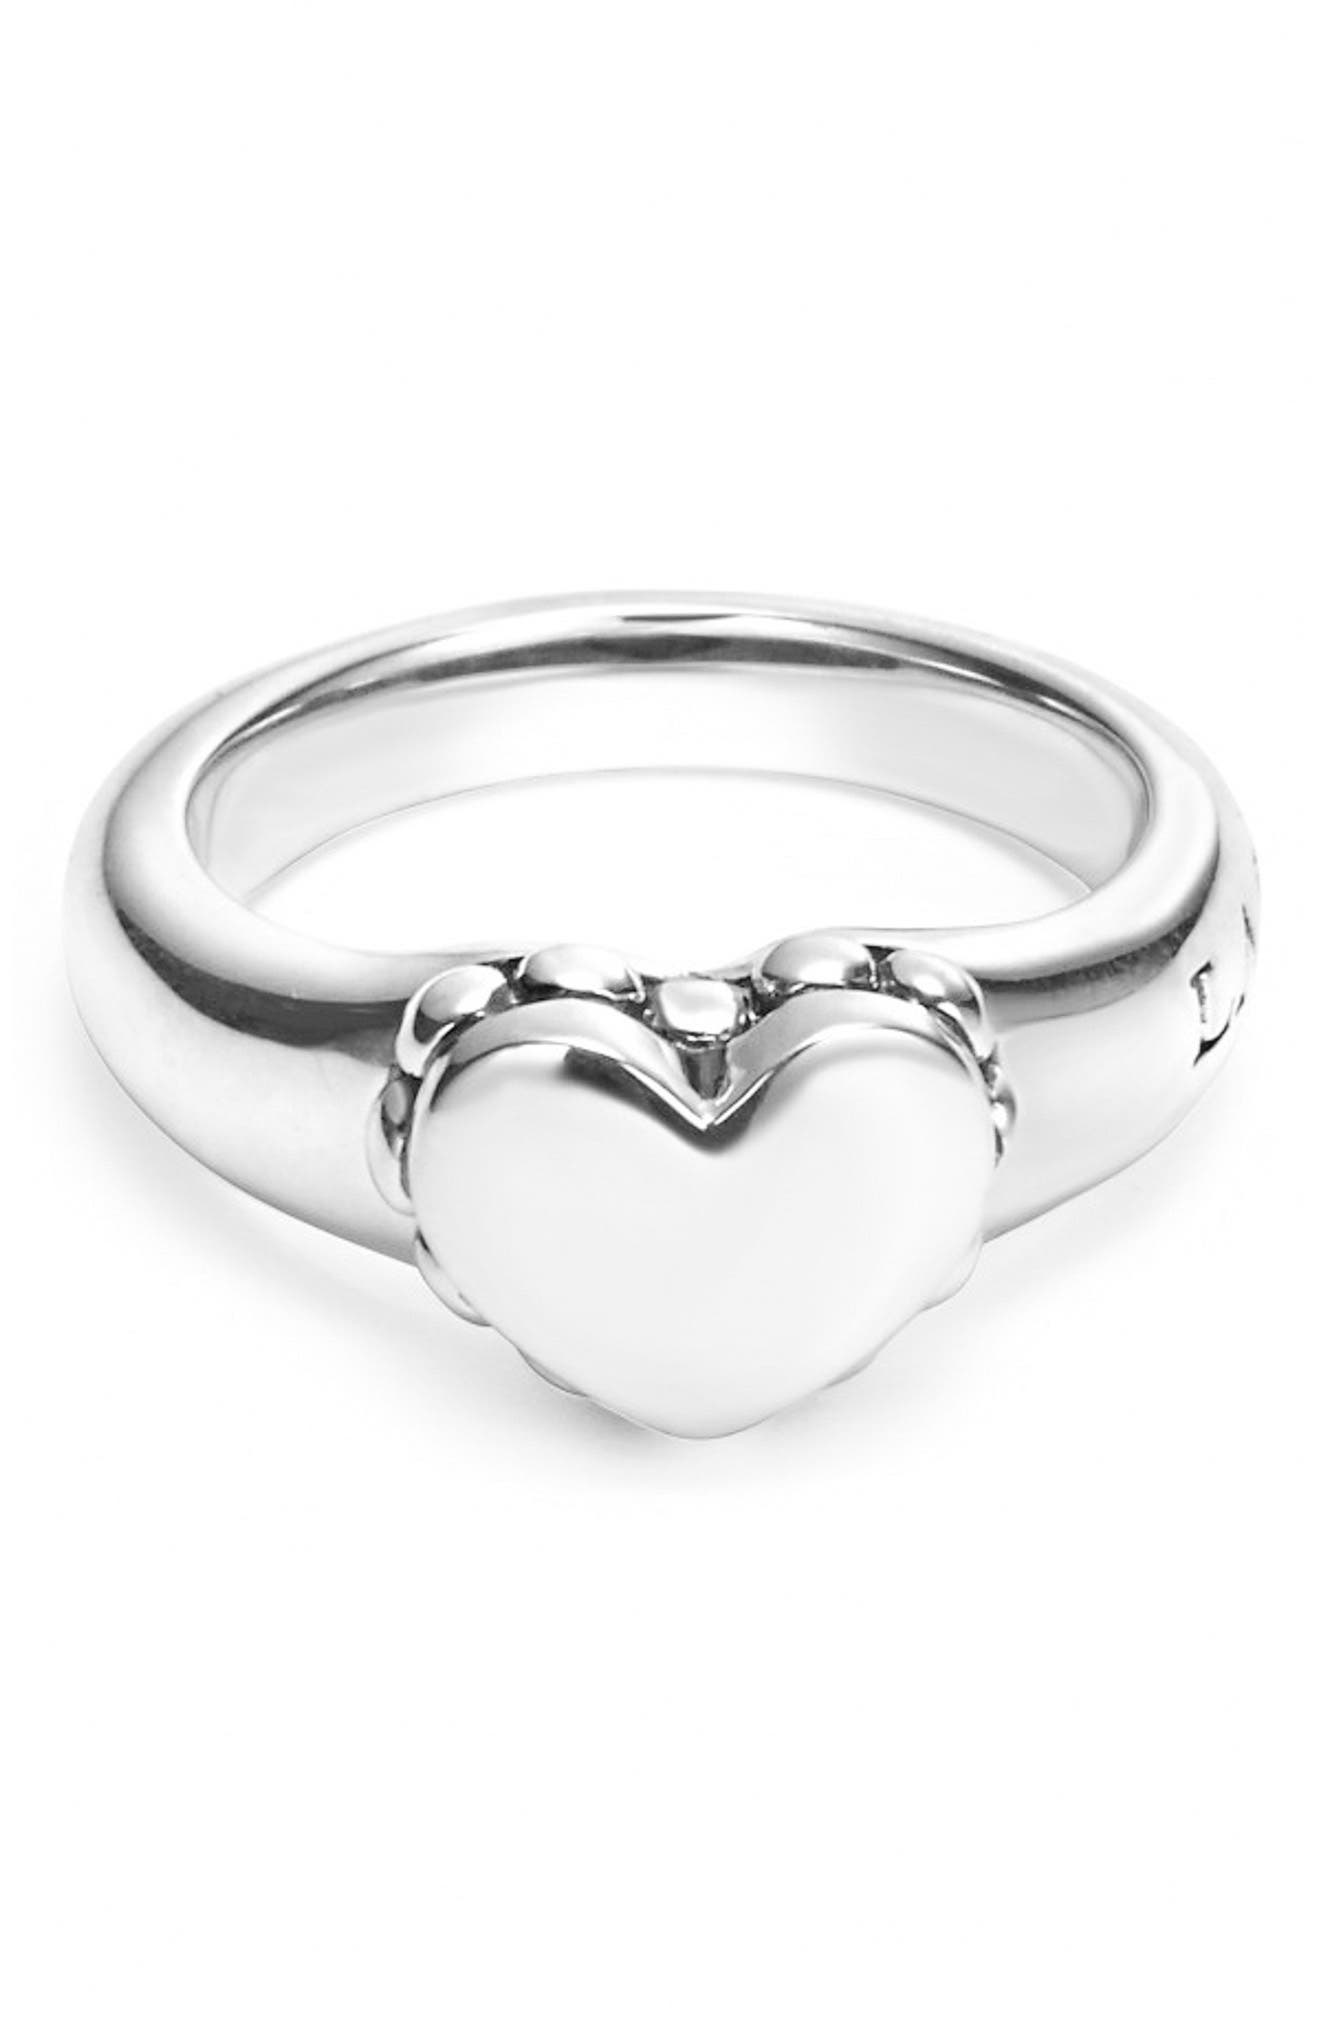 'Beloved' Small Heart Ring,                             Alternate thumbnail 2, color,                             Sterling Silver